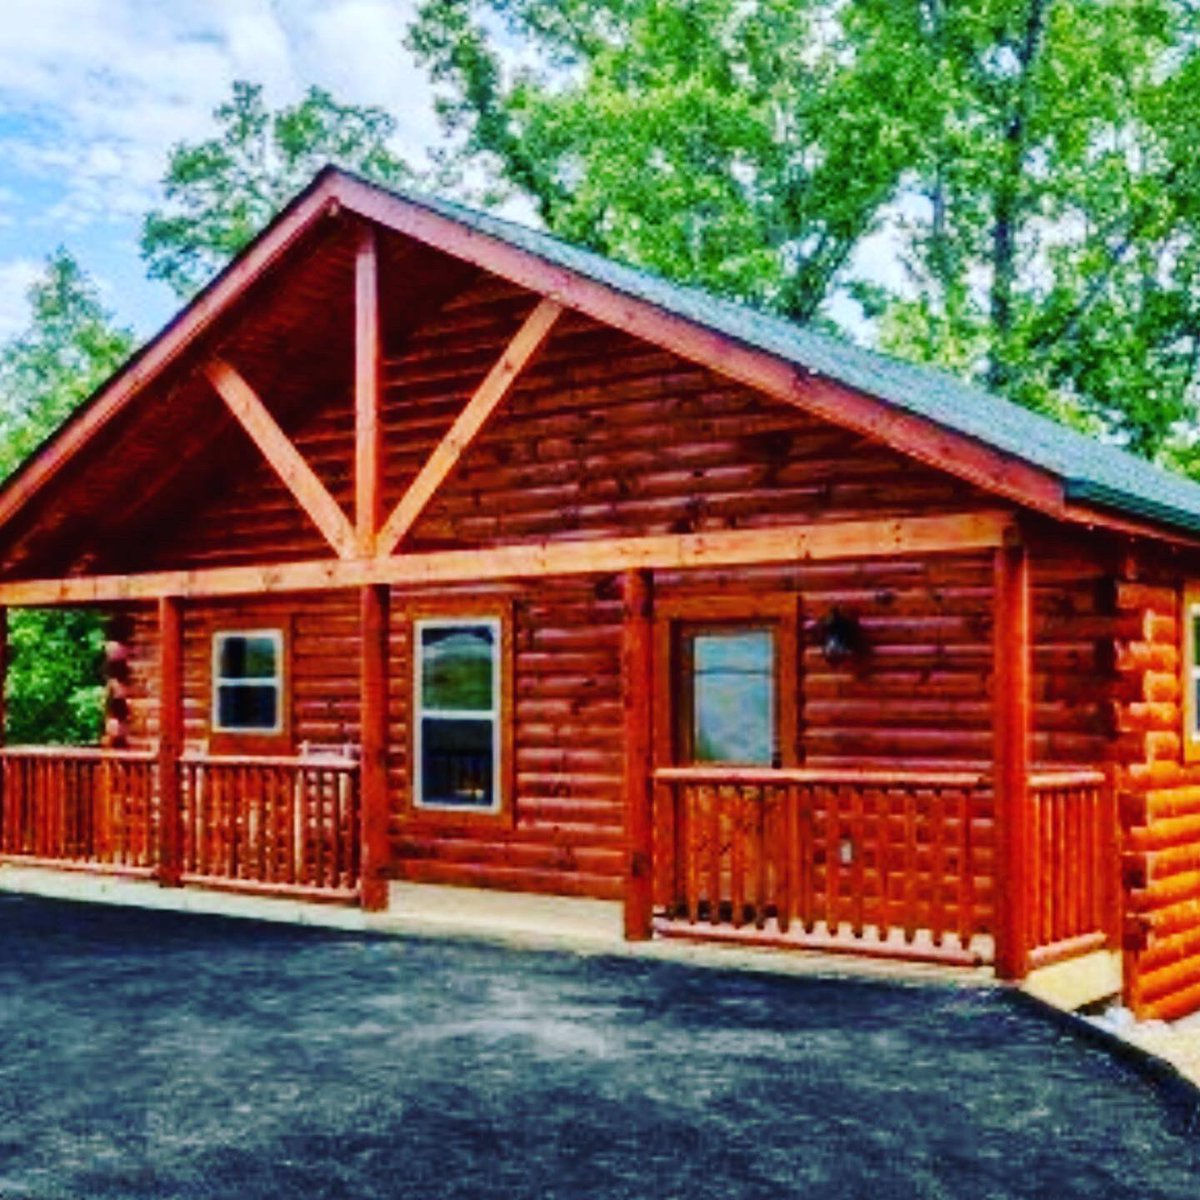 """We are """"Mountain Life"""".  Come stay with us and enjoy the beautiful Smoky Mountains and all its wonderful attractions!  Visit http://patriotgetaways.com/cabins/in-pigeon-forge/mountain-life.html… and check out special deals and reserve now!  #tennessee #cabinfever #gatlinburg #pigeonforge #patriotgetaways #smokymountainspic.twitter.com/IcBkyebtFh"""